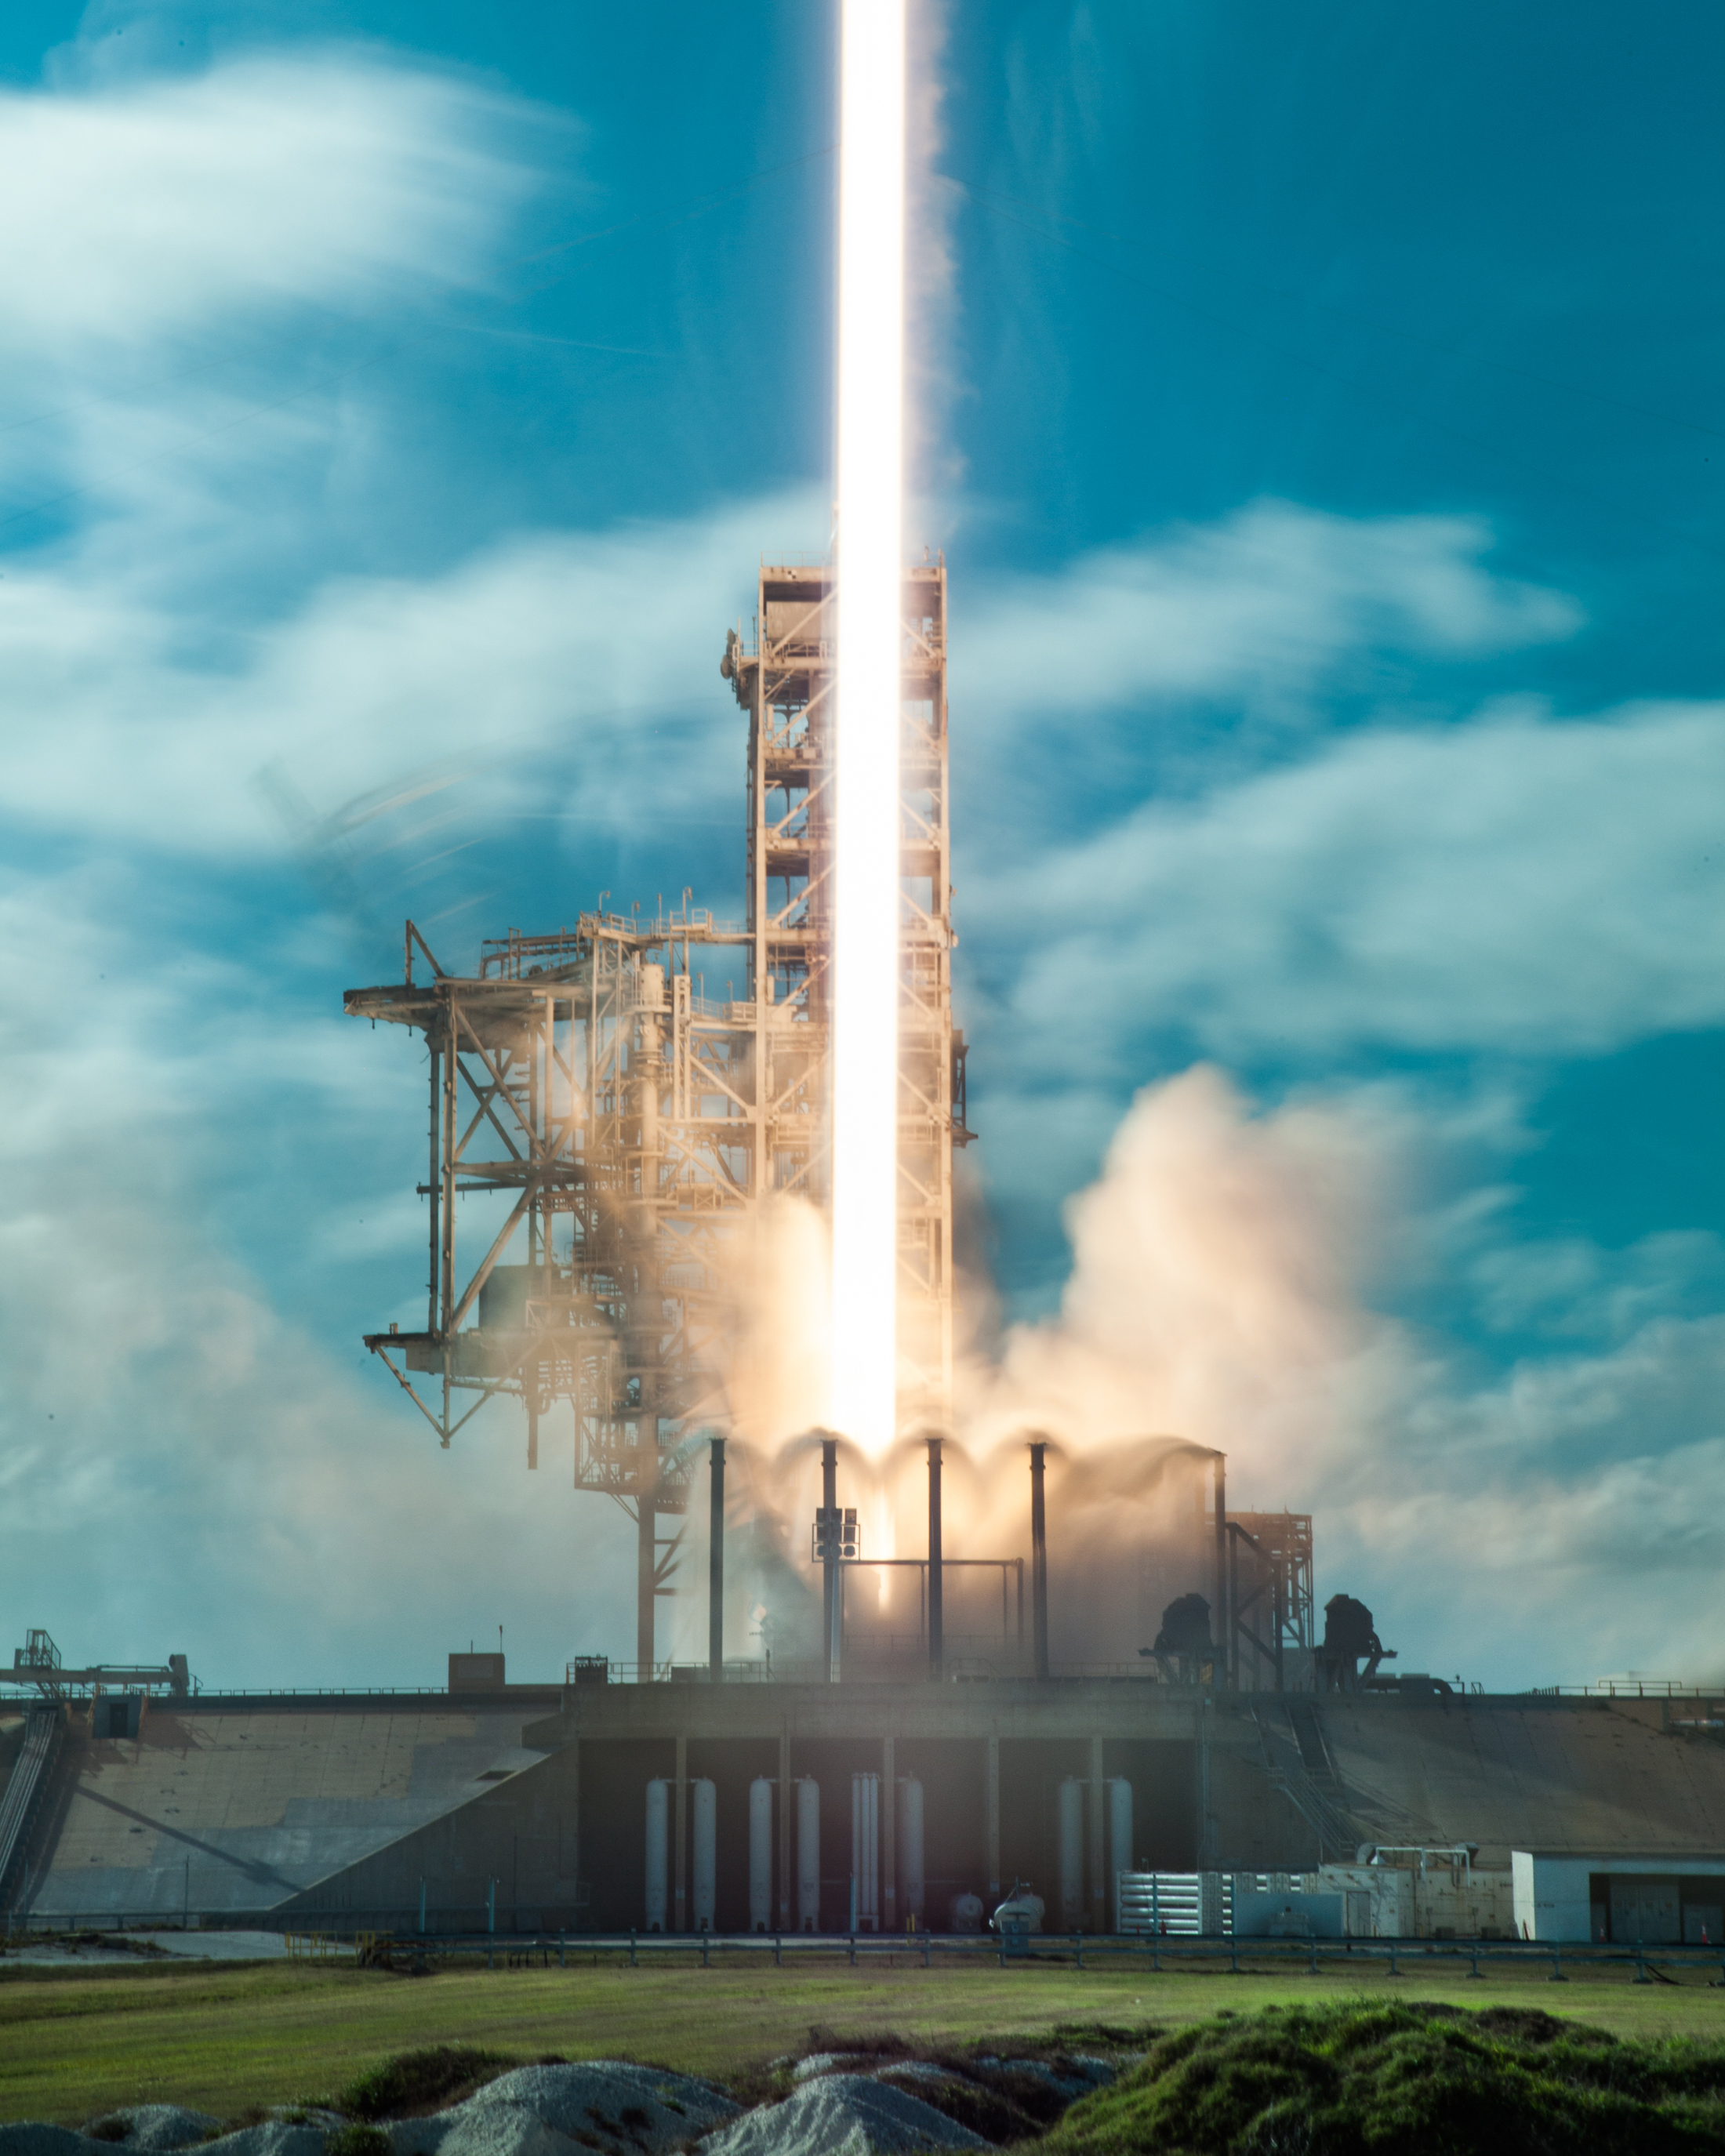 SpaceX Falcon Heavy Demo flight from Kennedy Space Center SLC-39A, Cape Canaveral, FL on February 5, 2018